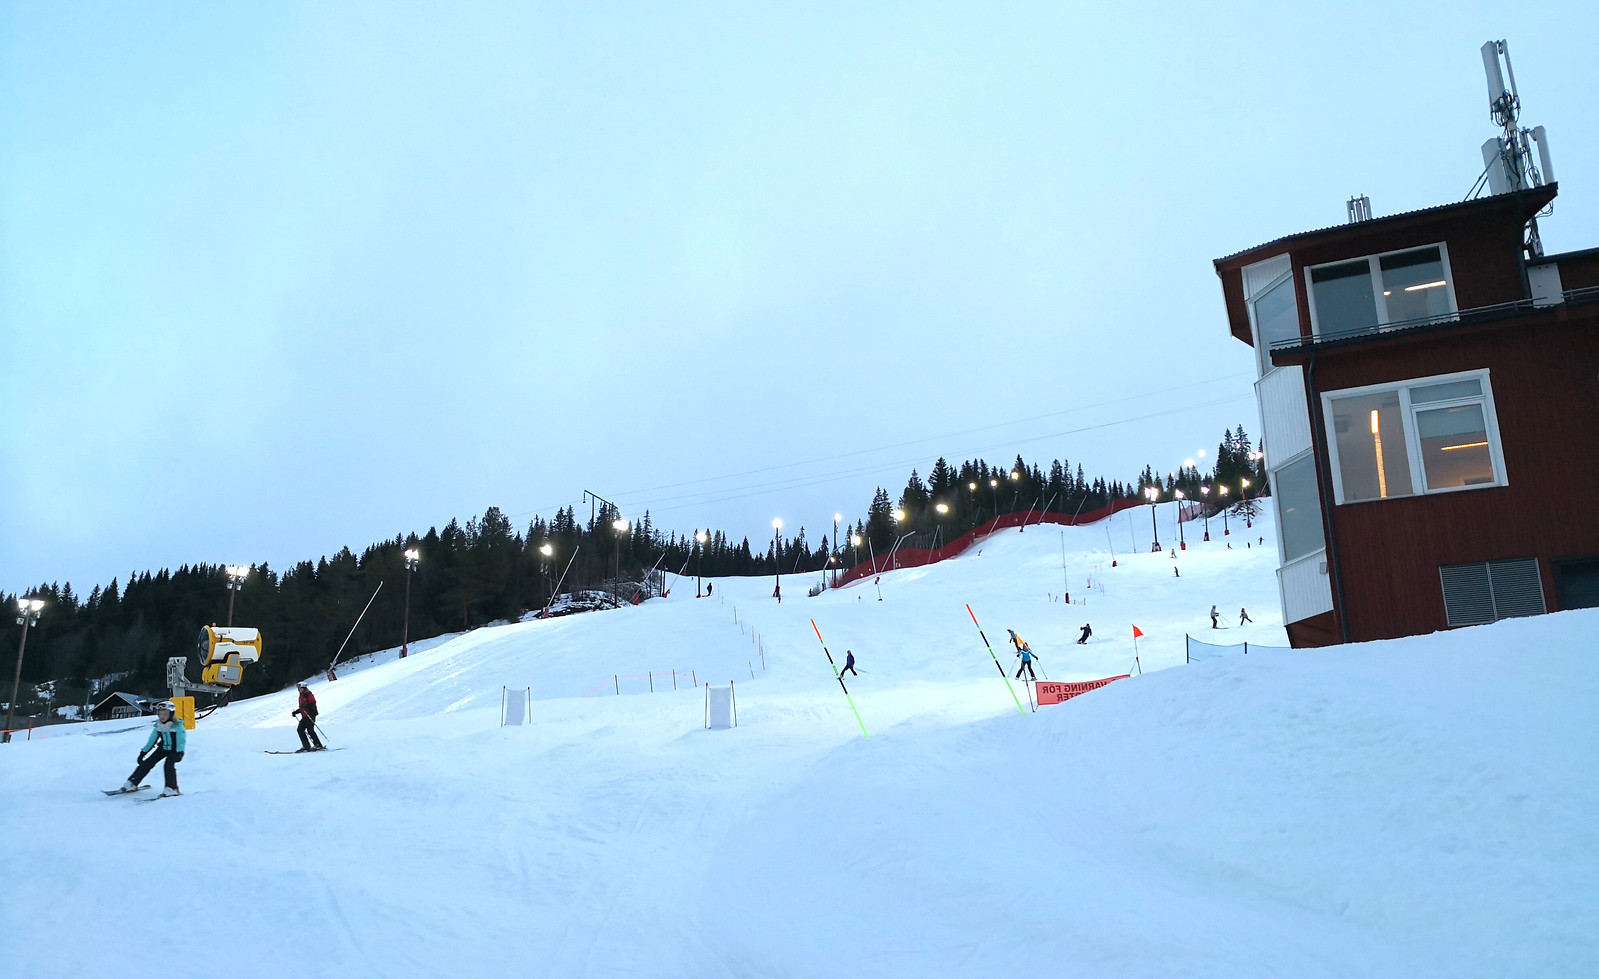 Lights on the slopes of Race Arena